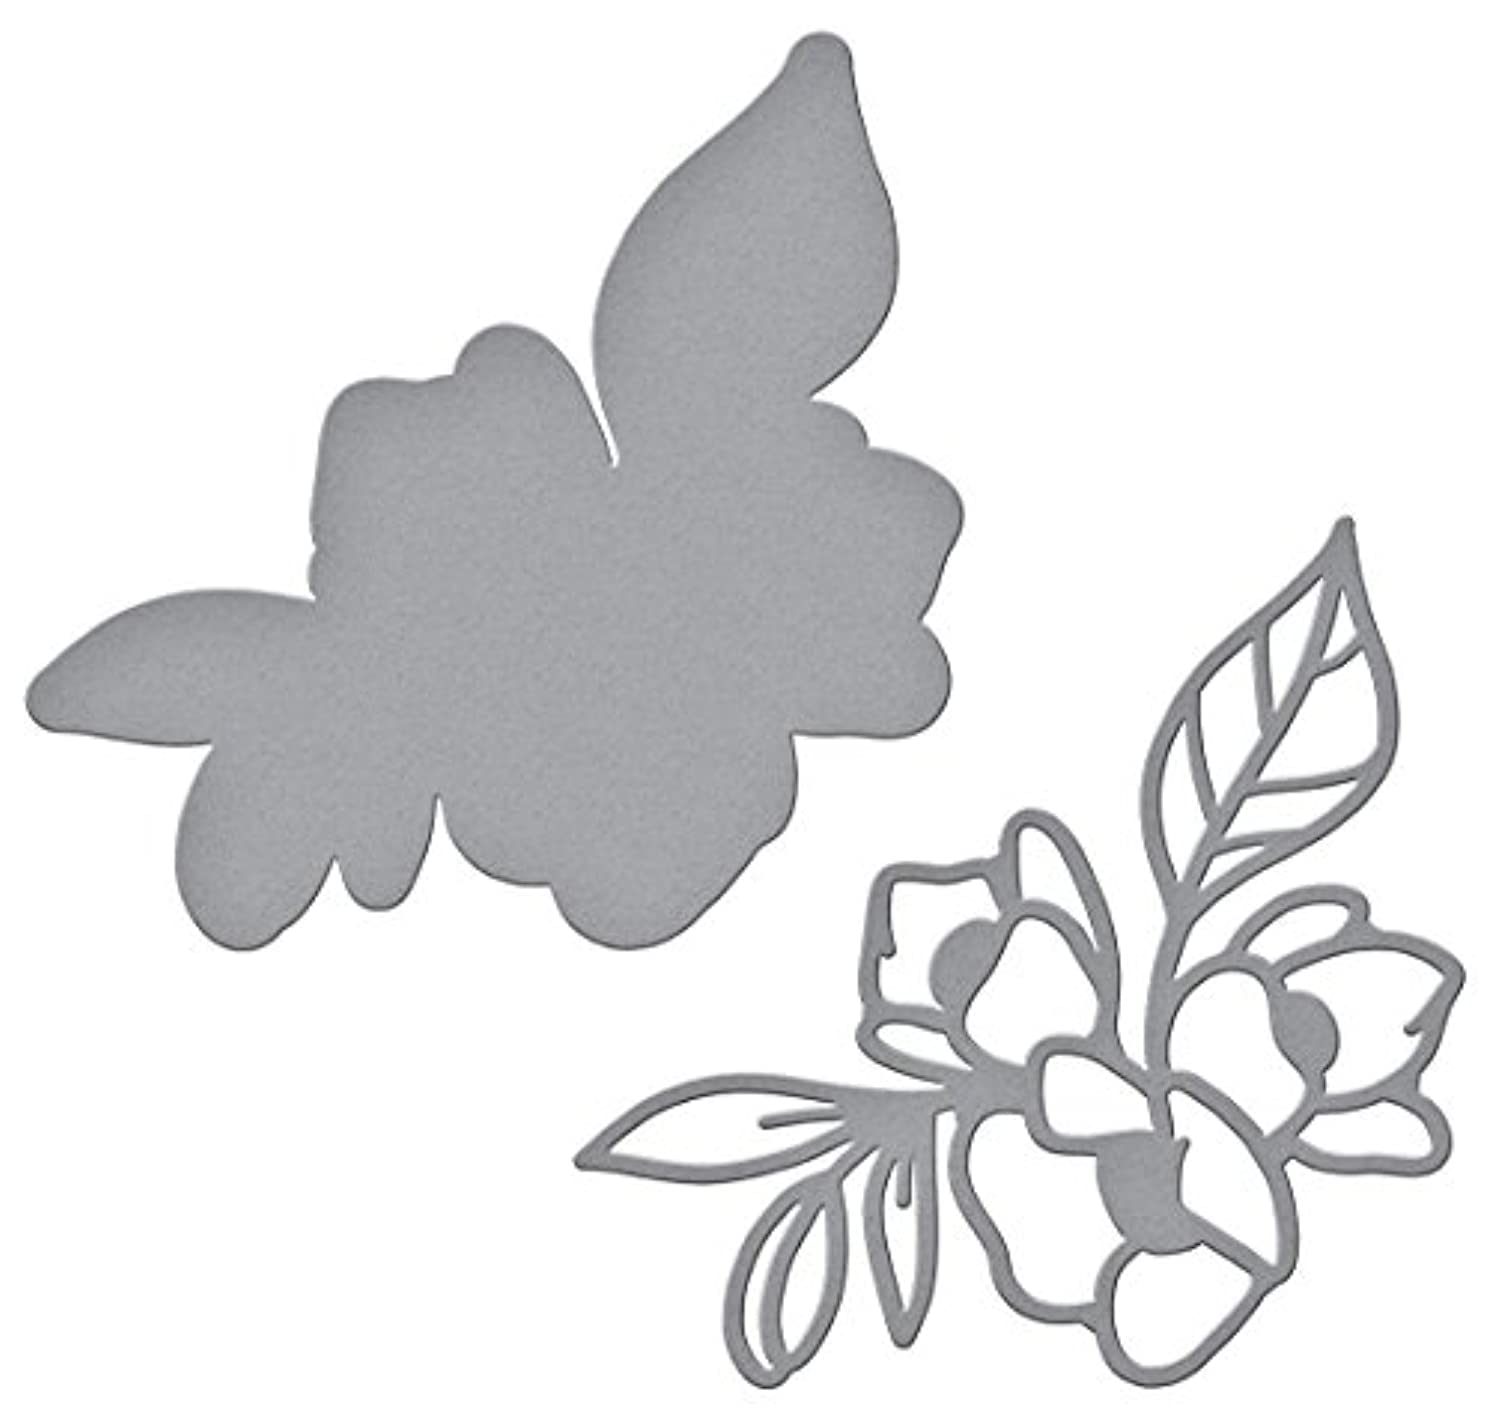 Spellbinders Shapeabilities Lovely Lilac by Stephanie Low Etched/Wafer Thin Dies